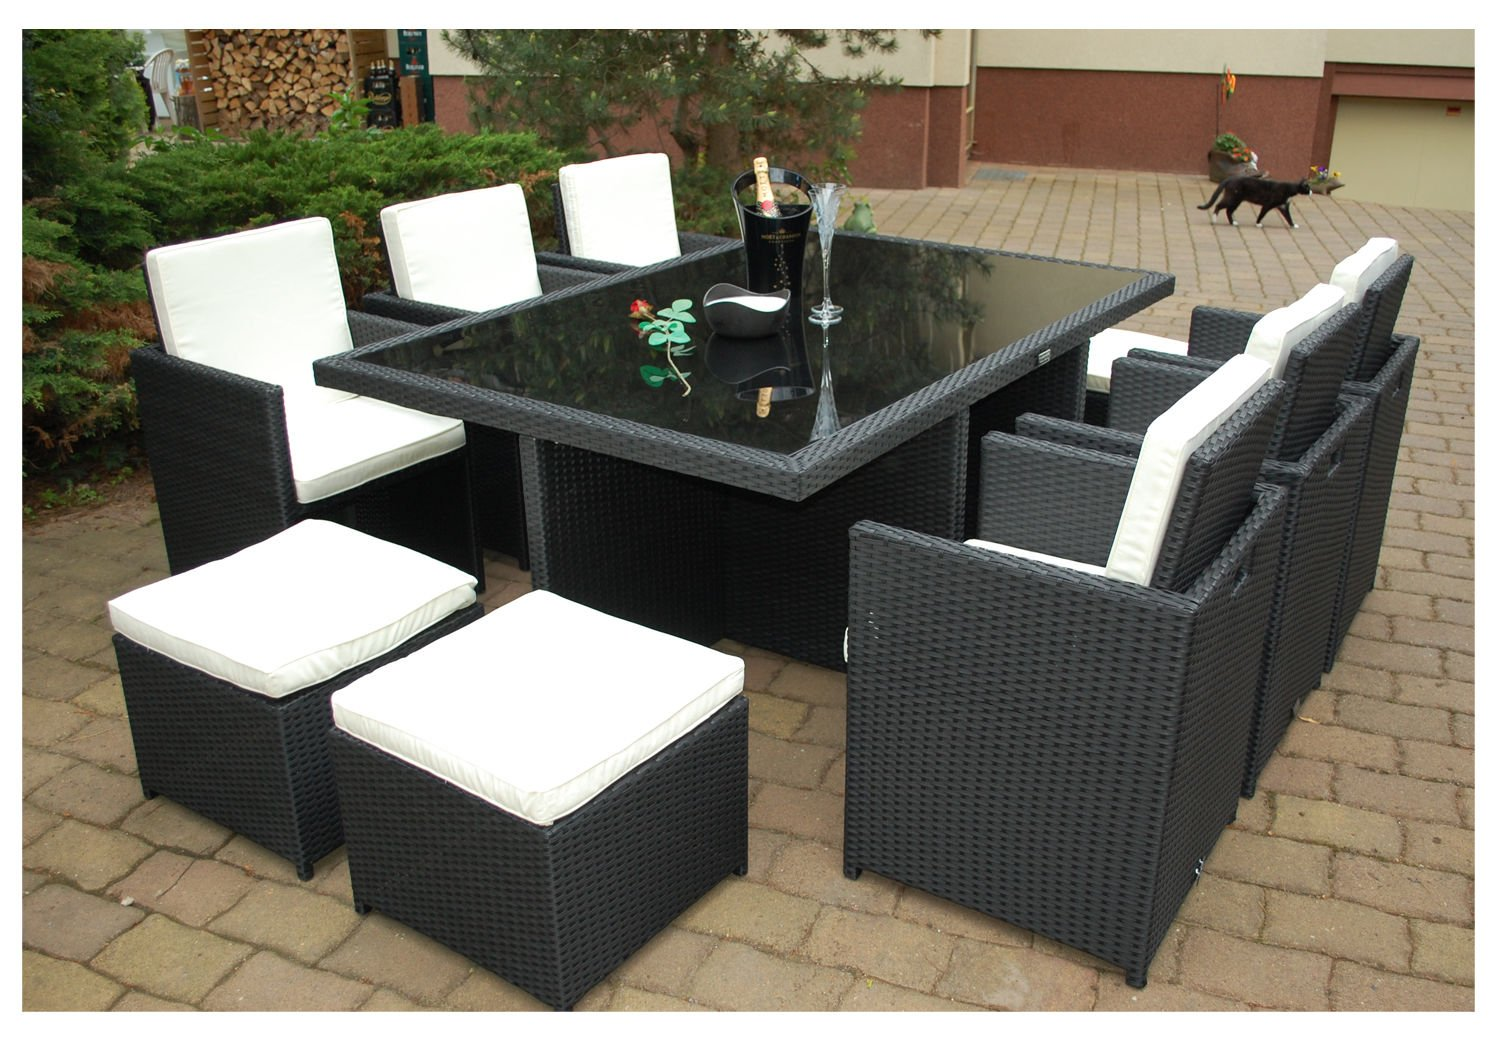 ssitg poly rattan gartenm bel 6 4 schwarz ragnar k m beldesign garten garnitur m bel g nstig kaufen. Black Bedroom Furniture Sets. Home Design Ideas